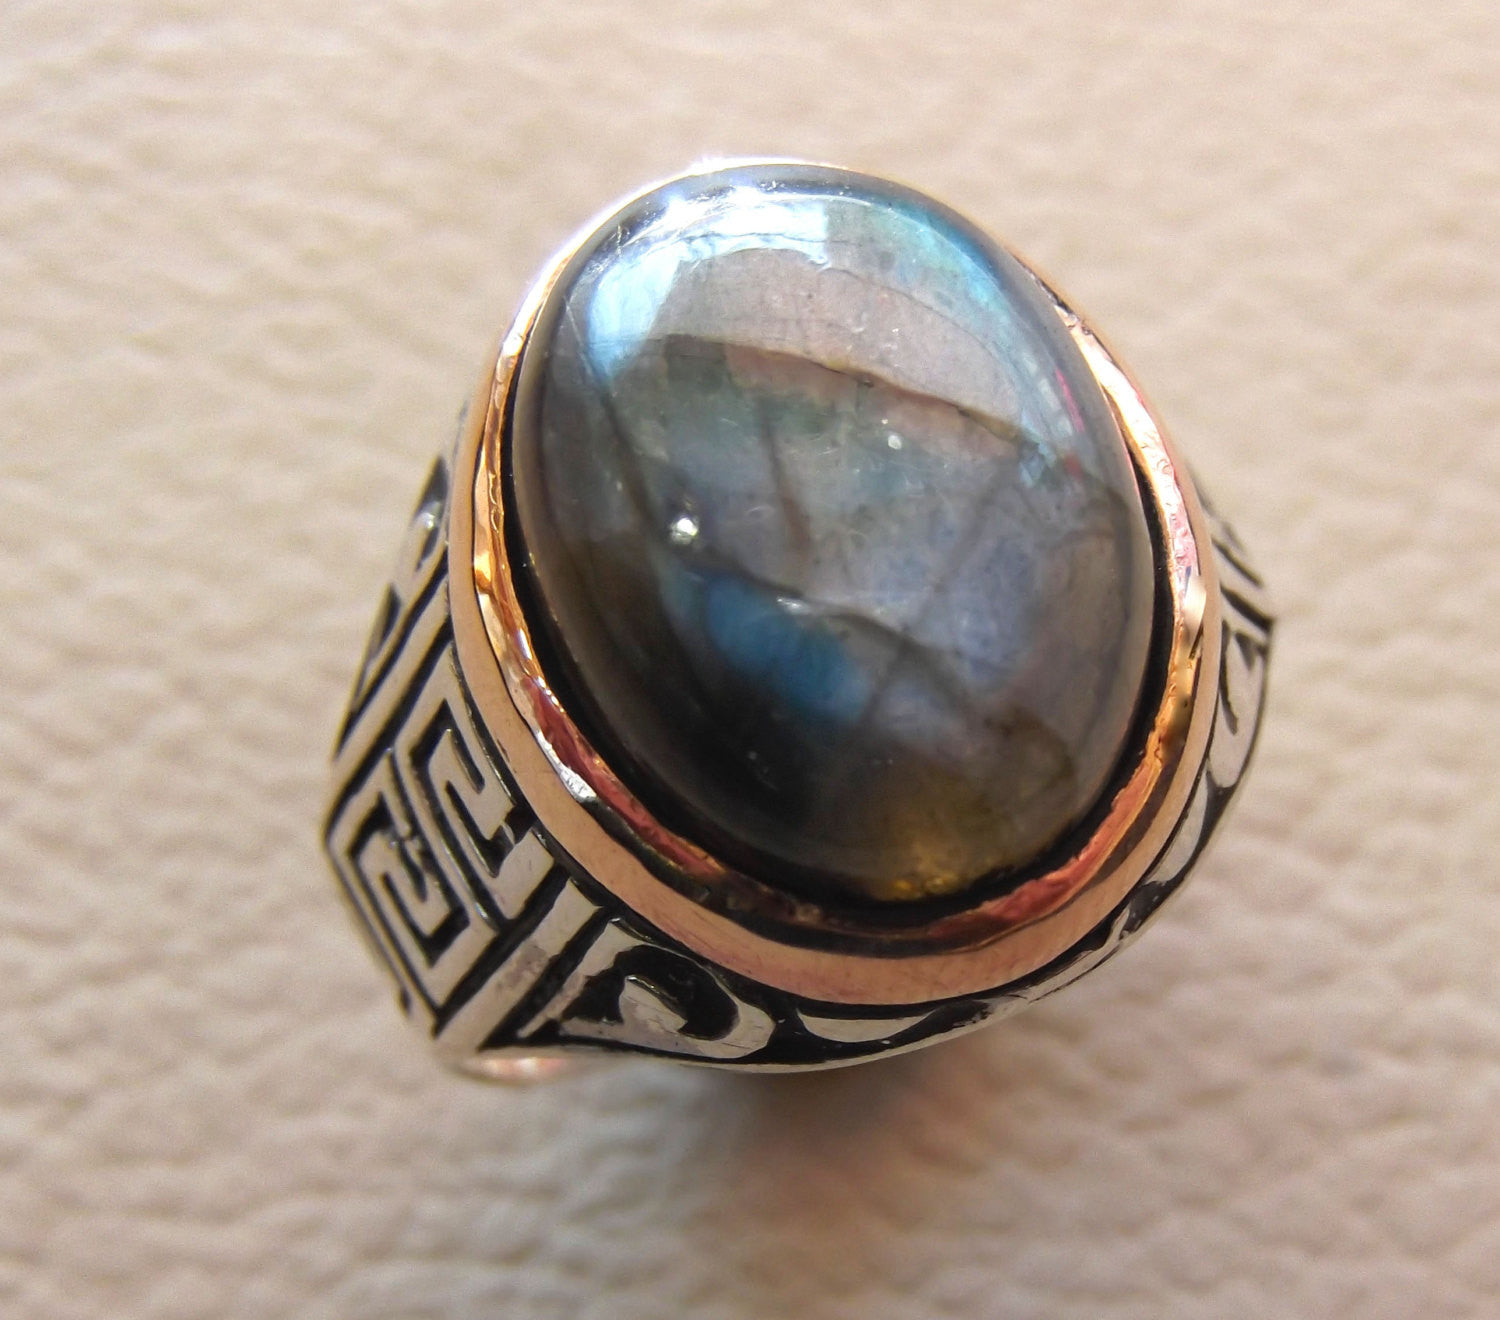 Labradorite natural stone multi color semi precious cabochon stone man ring sterling silver 925 bronze frame all sizes jewelry fast shipping